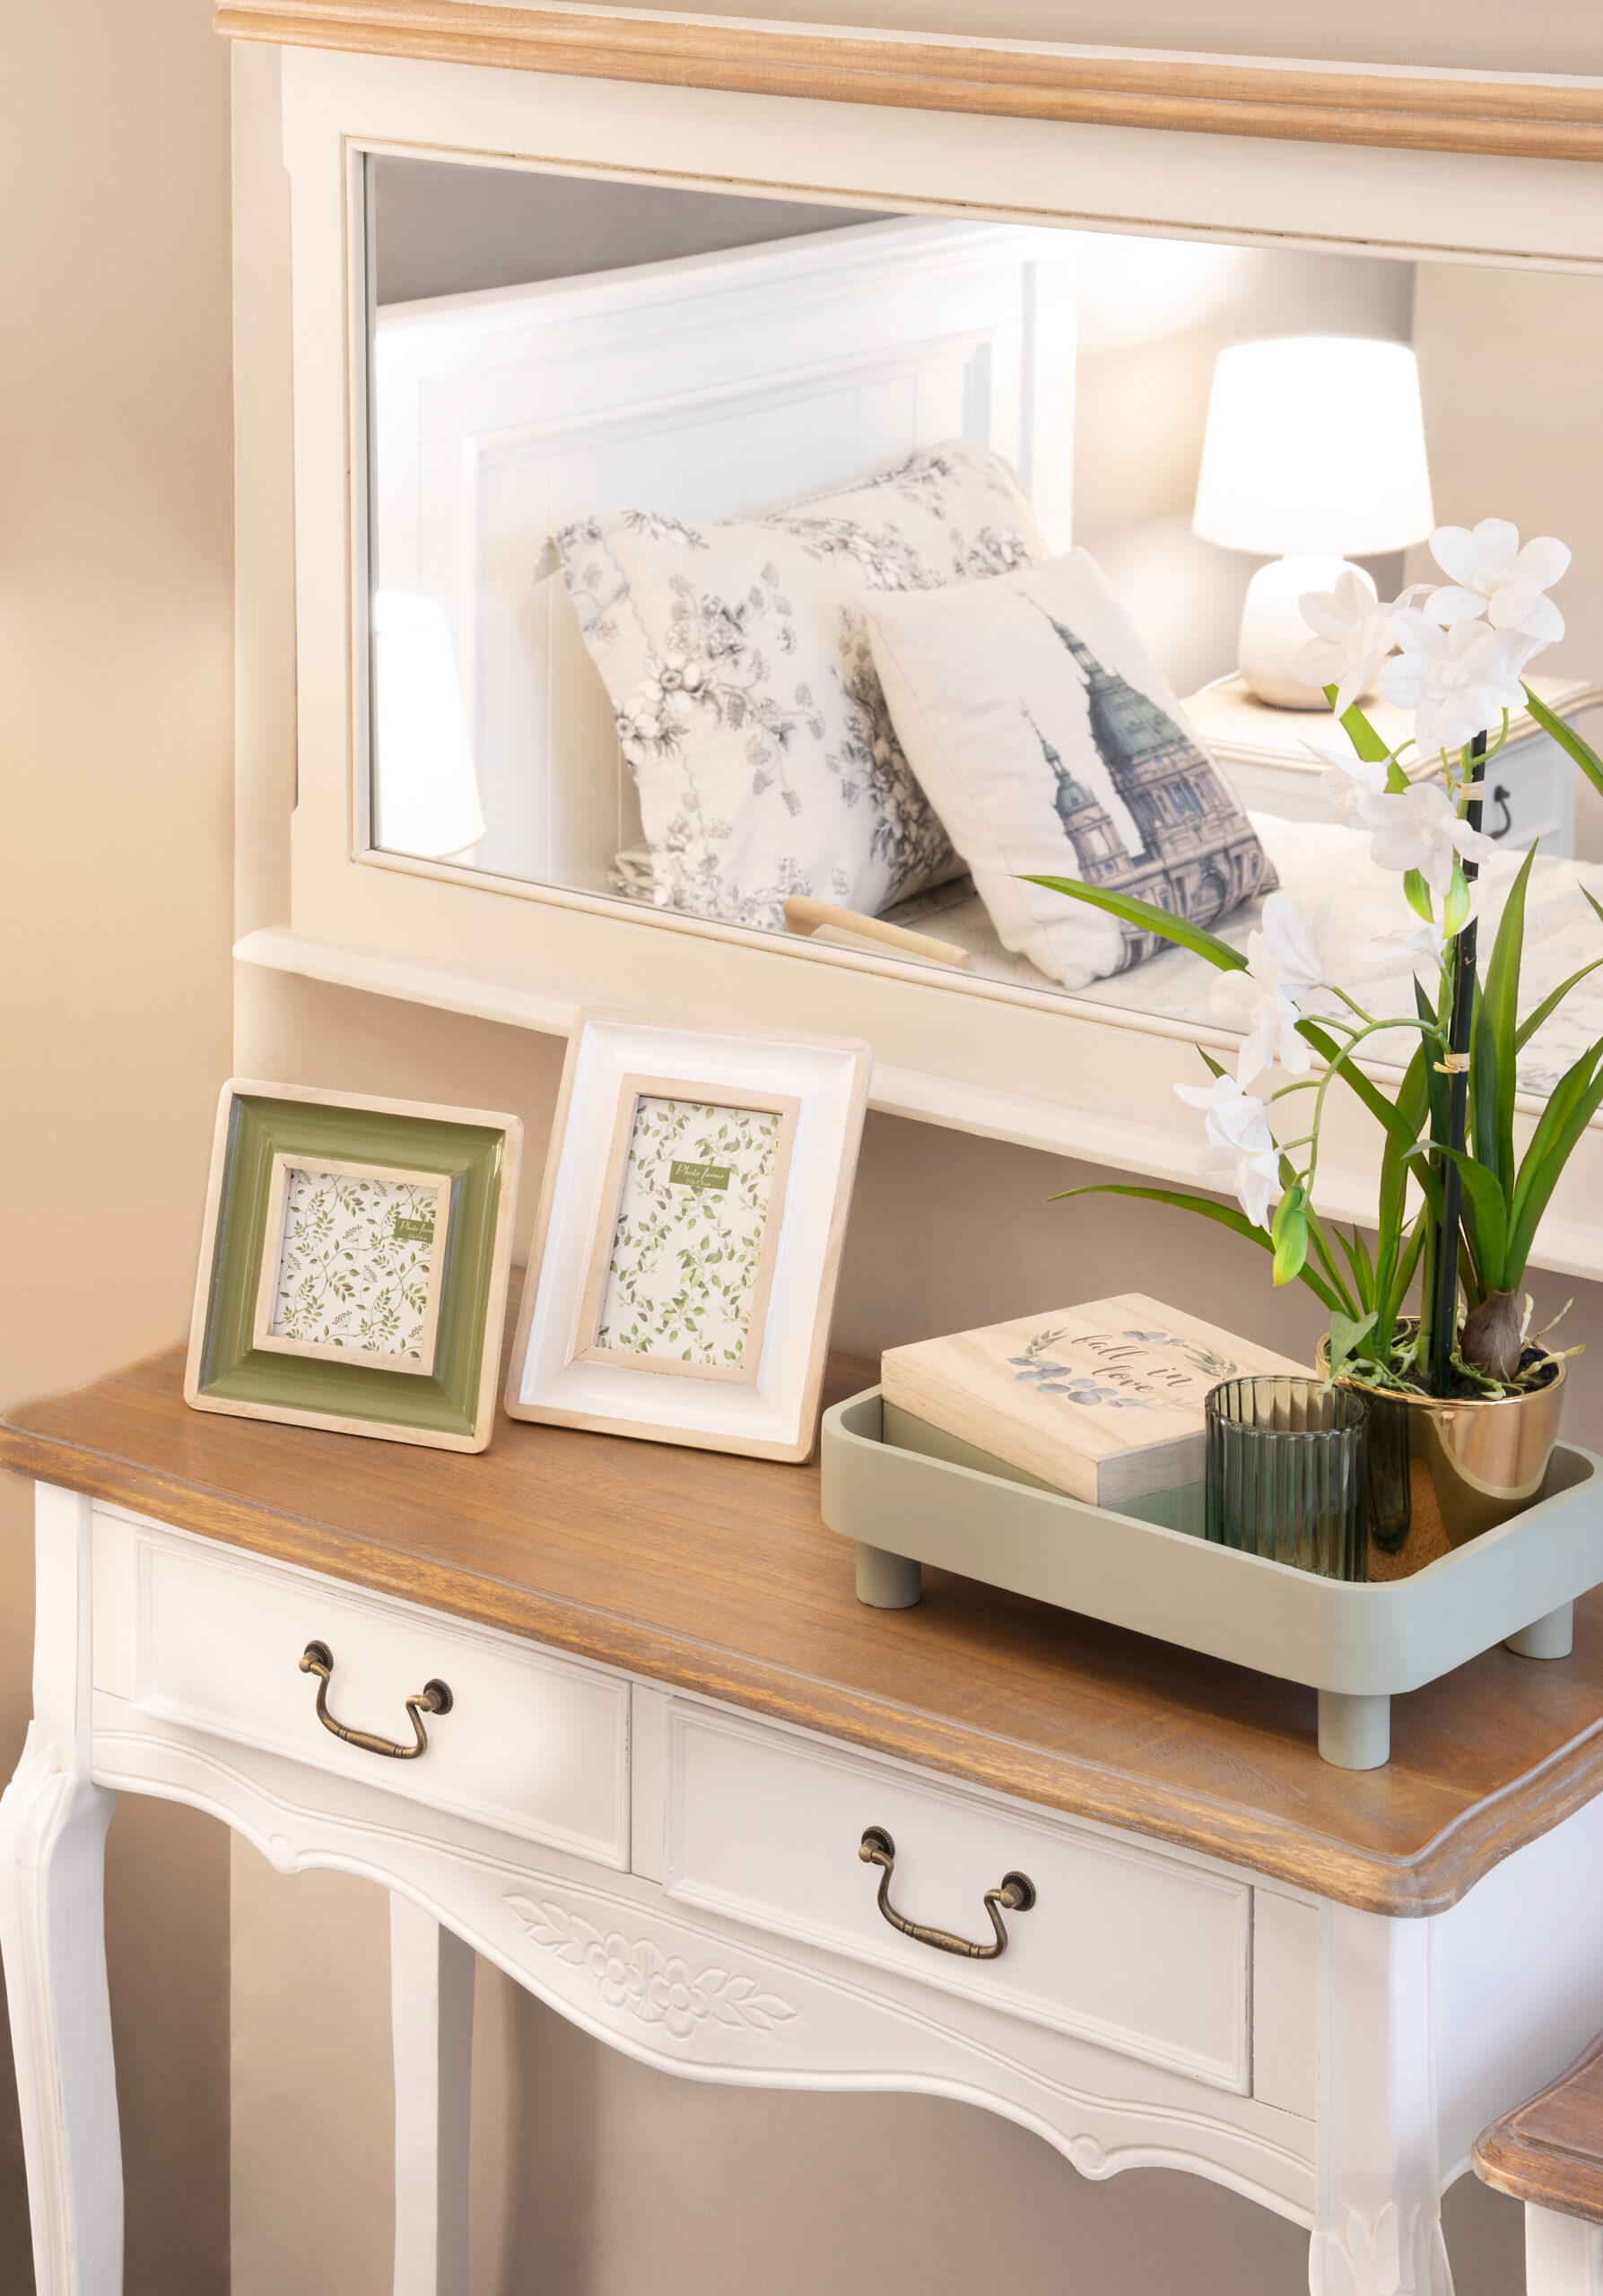 Get creative with your storage solutions. Try out these storage hacks: